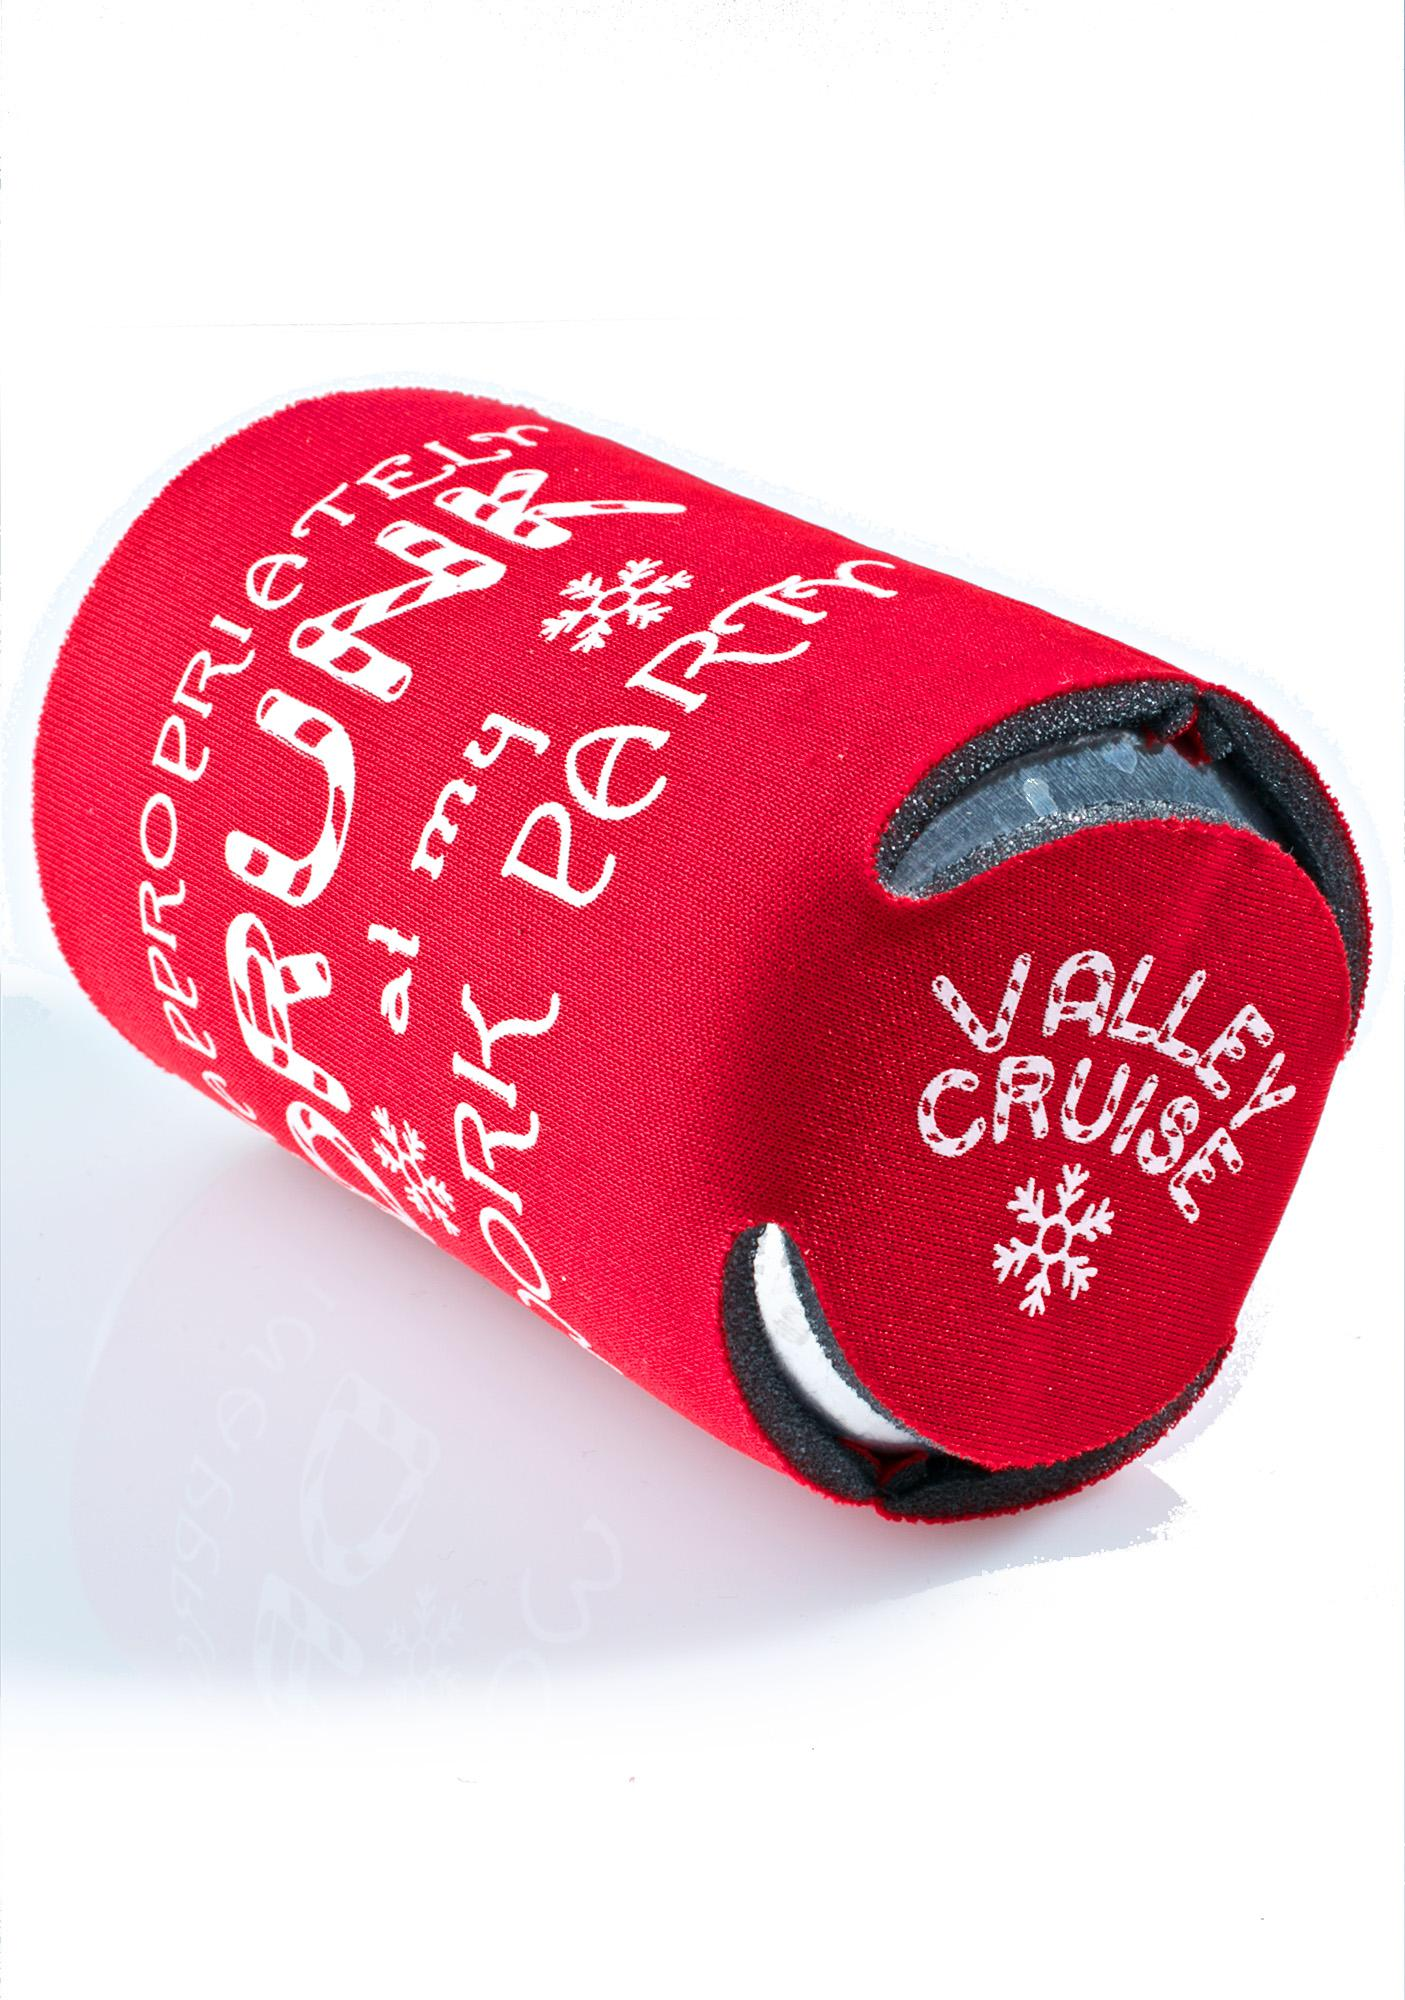 Valley Cruise Press Crunk With My Coworkers Beer Coozie